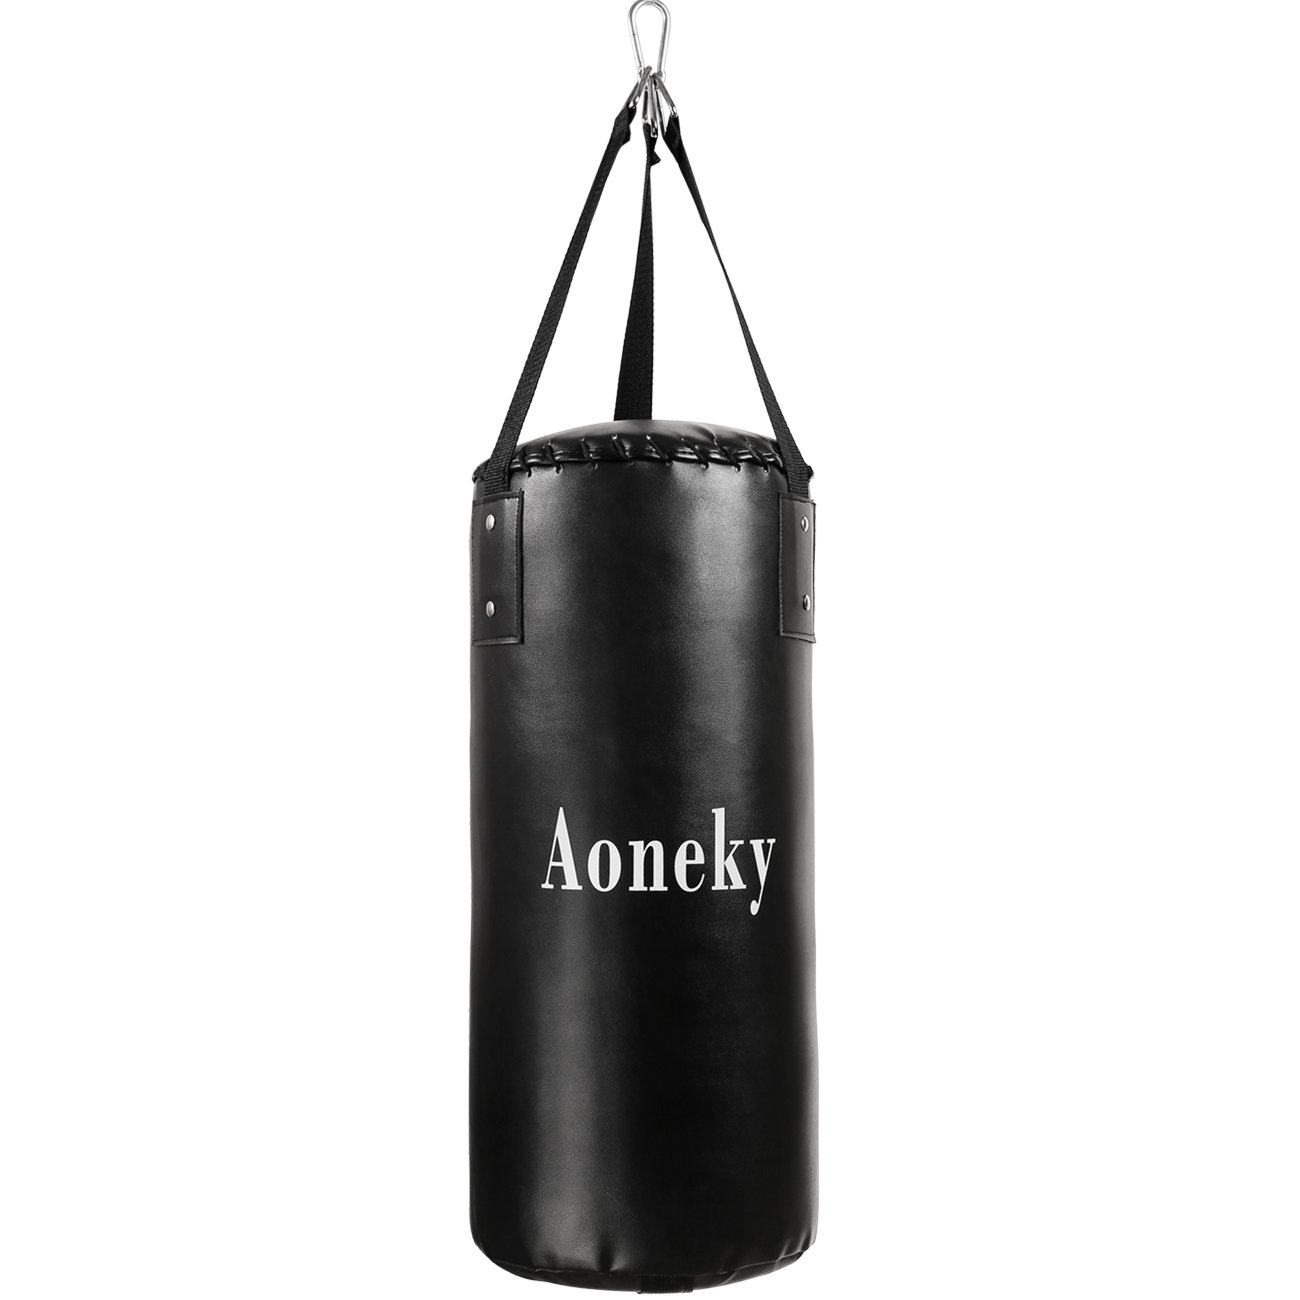 Aoneky Leather Kids Punching Bag – Filled Boxing Bag for Kids Karate, 10 Pound Kicking Bag for Children Aged 3 to 10 Years Old, Hanging Punch Bag, Small Kickboxing Bag (Black)